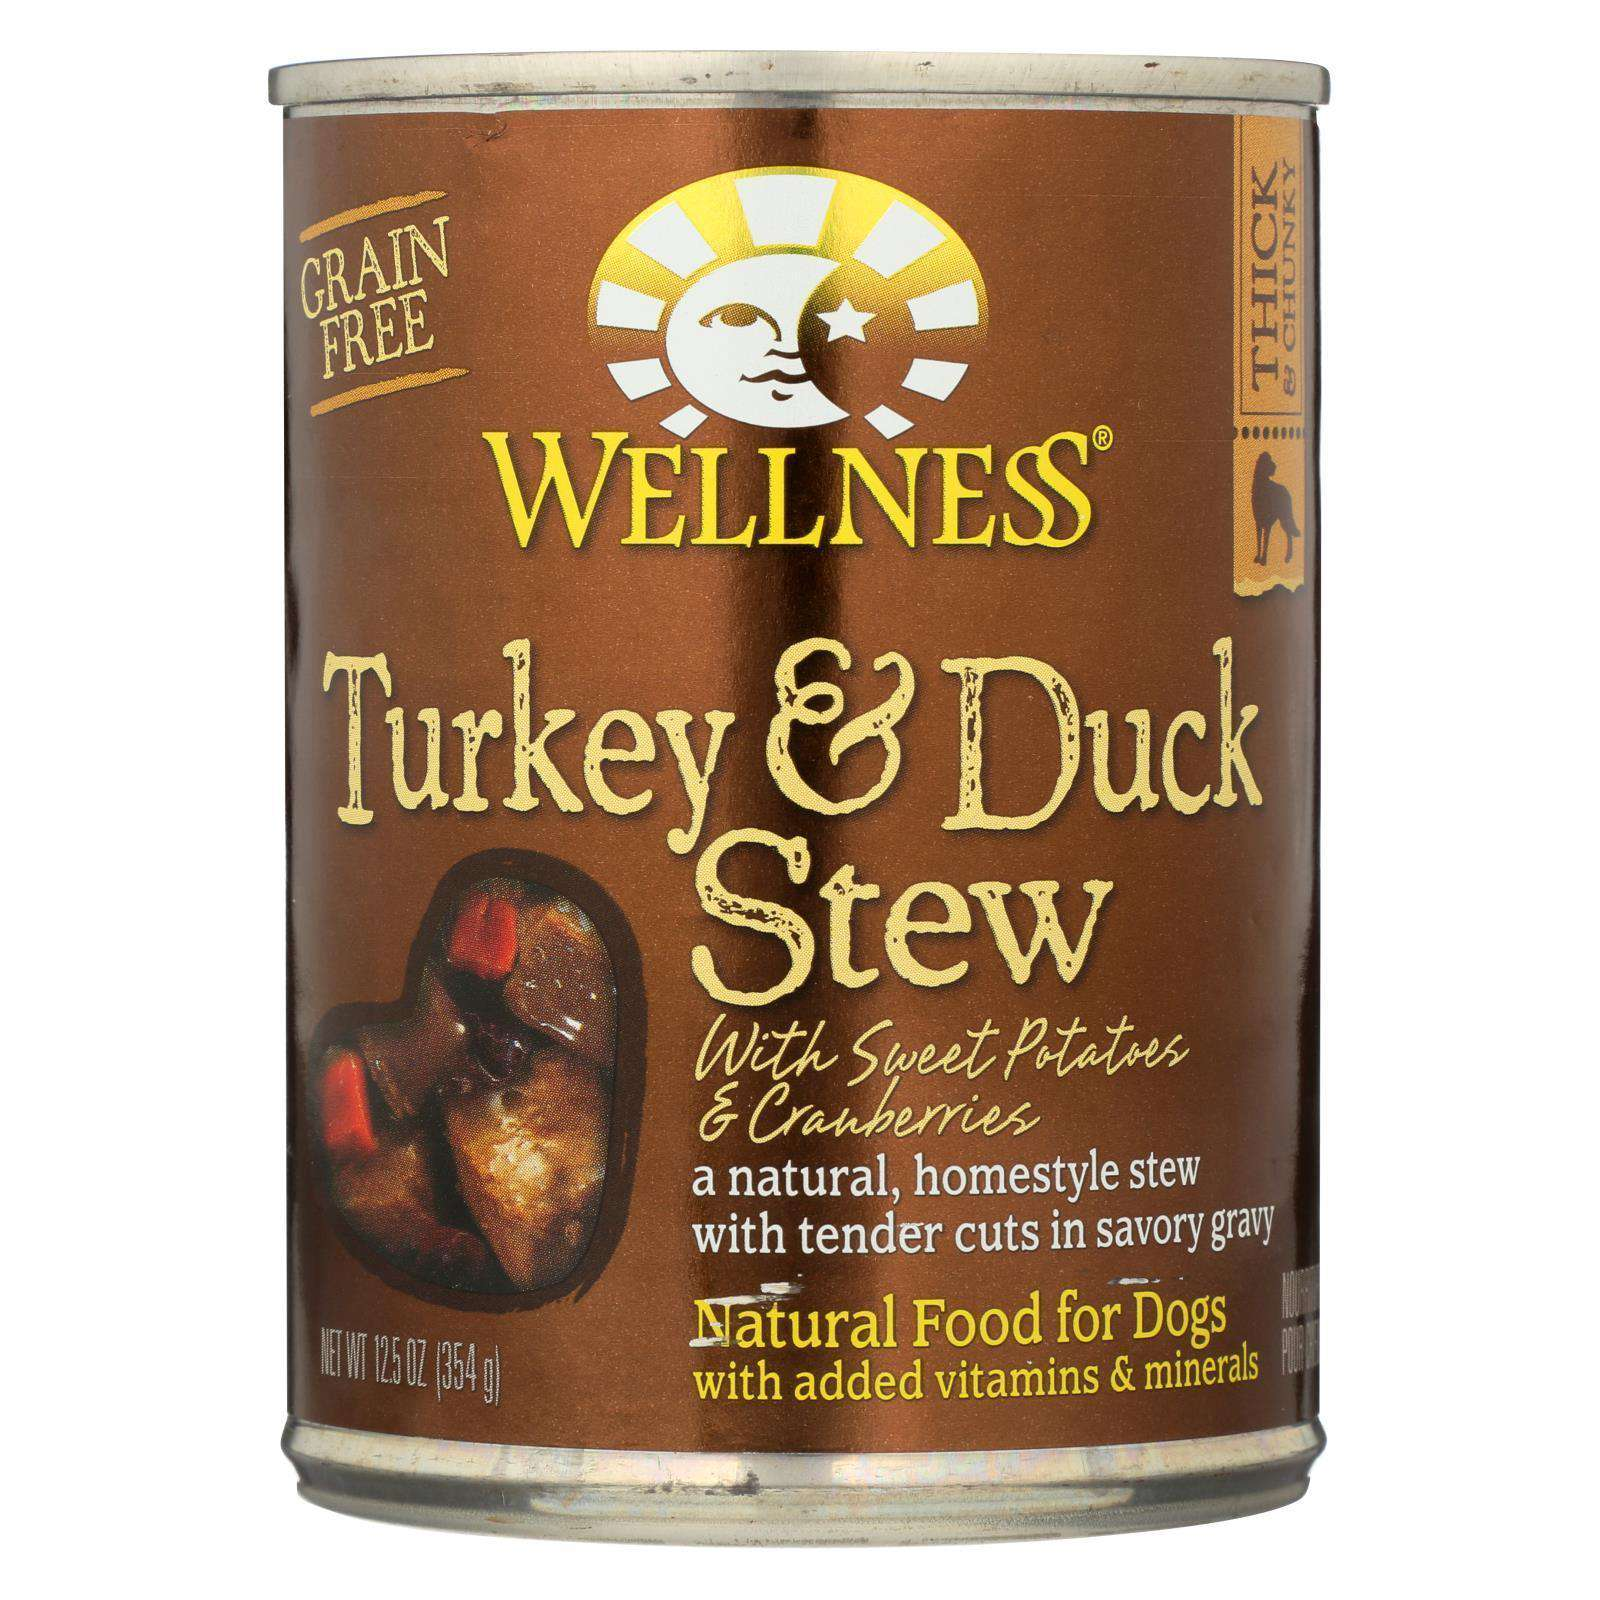 Wellness Pet Products Canned Dog Food - Turkey And Duck With Sweet Potatoes And Cranberries - Case Of 12 - 12.5 Oz.-Wellness Pet Products-DirtyFurClothing